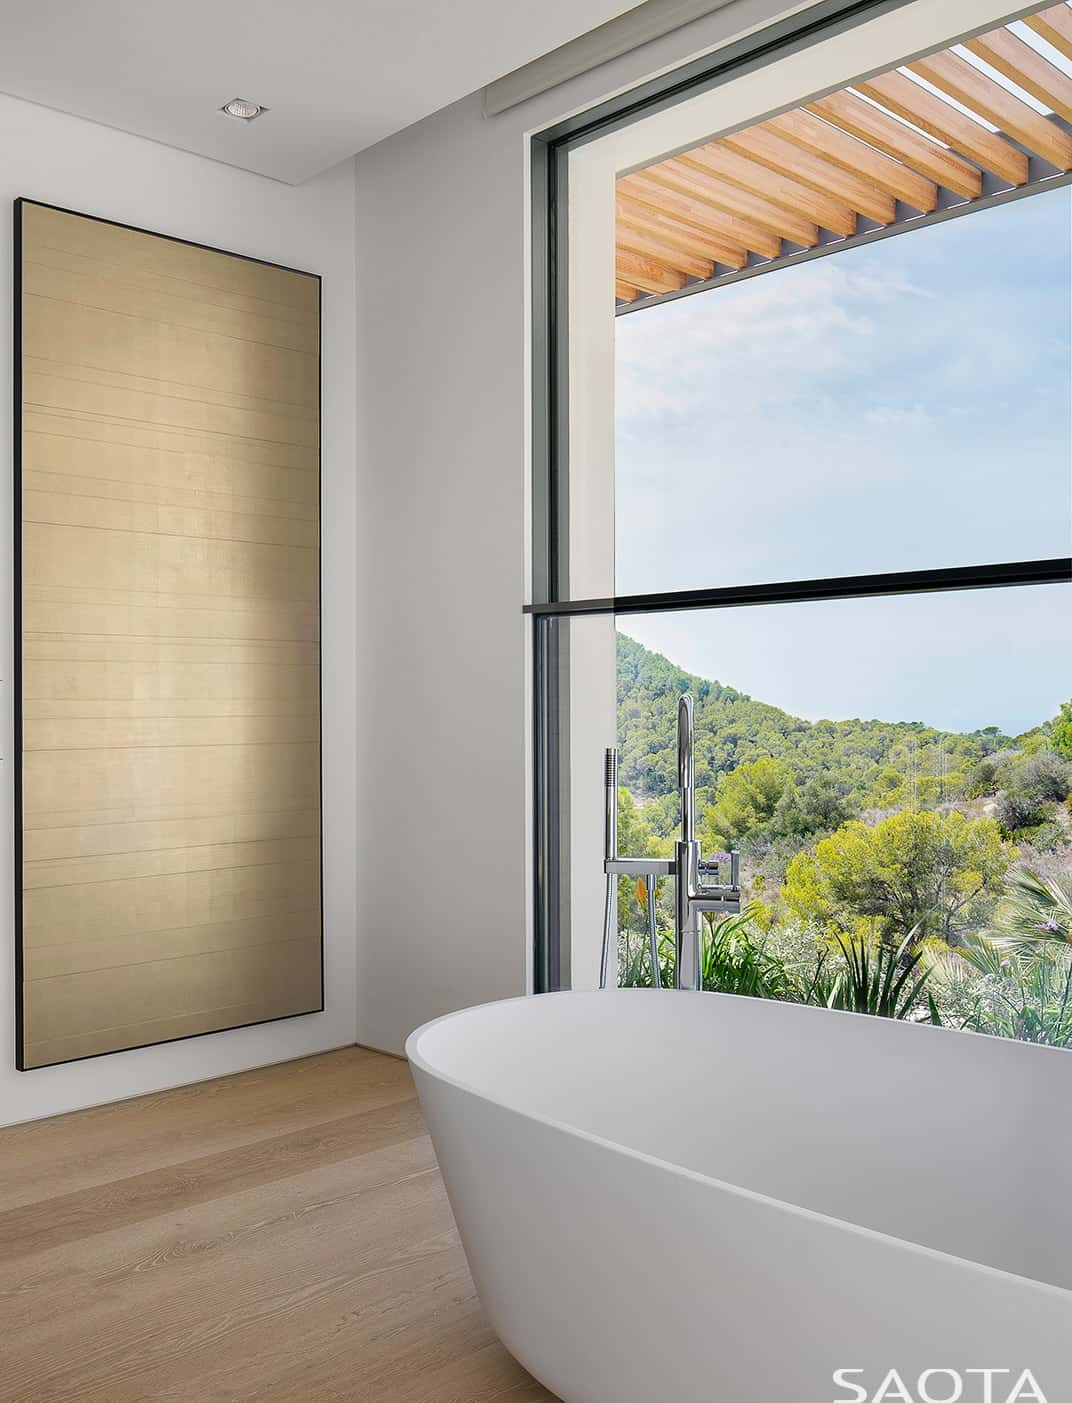 Soak in the freestanding tub while having a nice view of the outdoor space. Photo by Adam Letch / Architecture by Rys Architects / Interior design by ARRCC and Rys Architects / Lighting design by Lux Populi / Landscaping by Cracknell